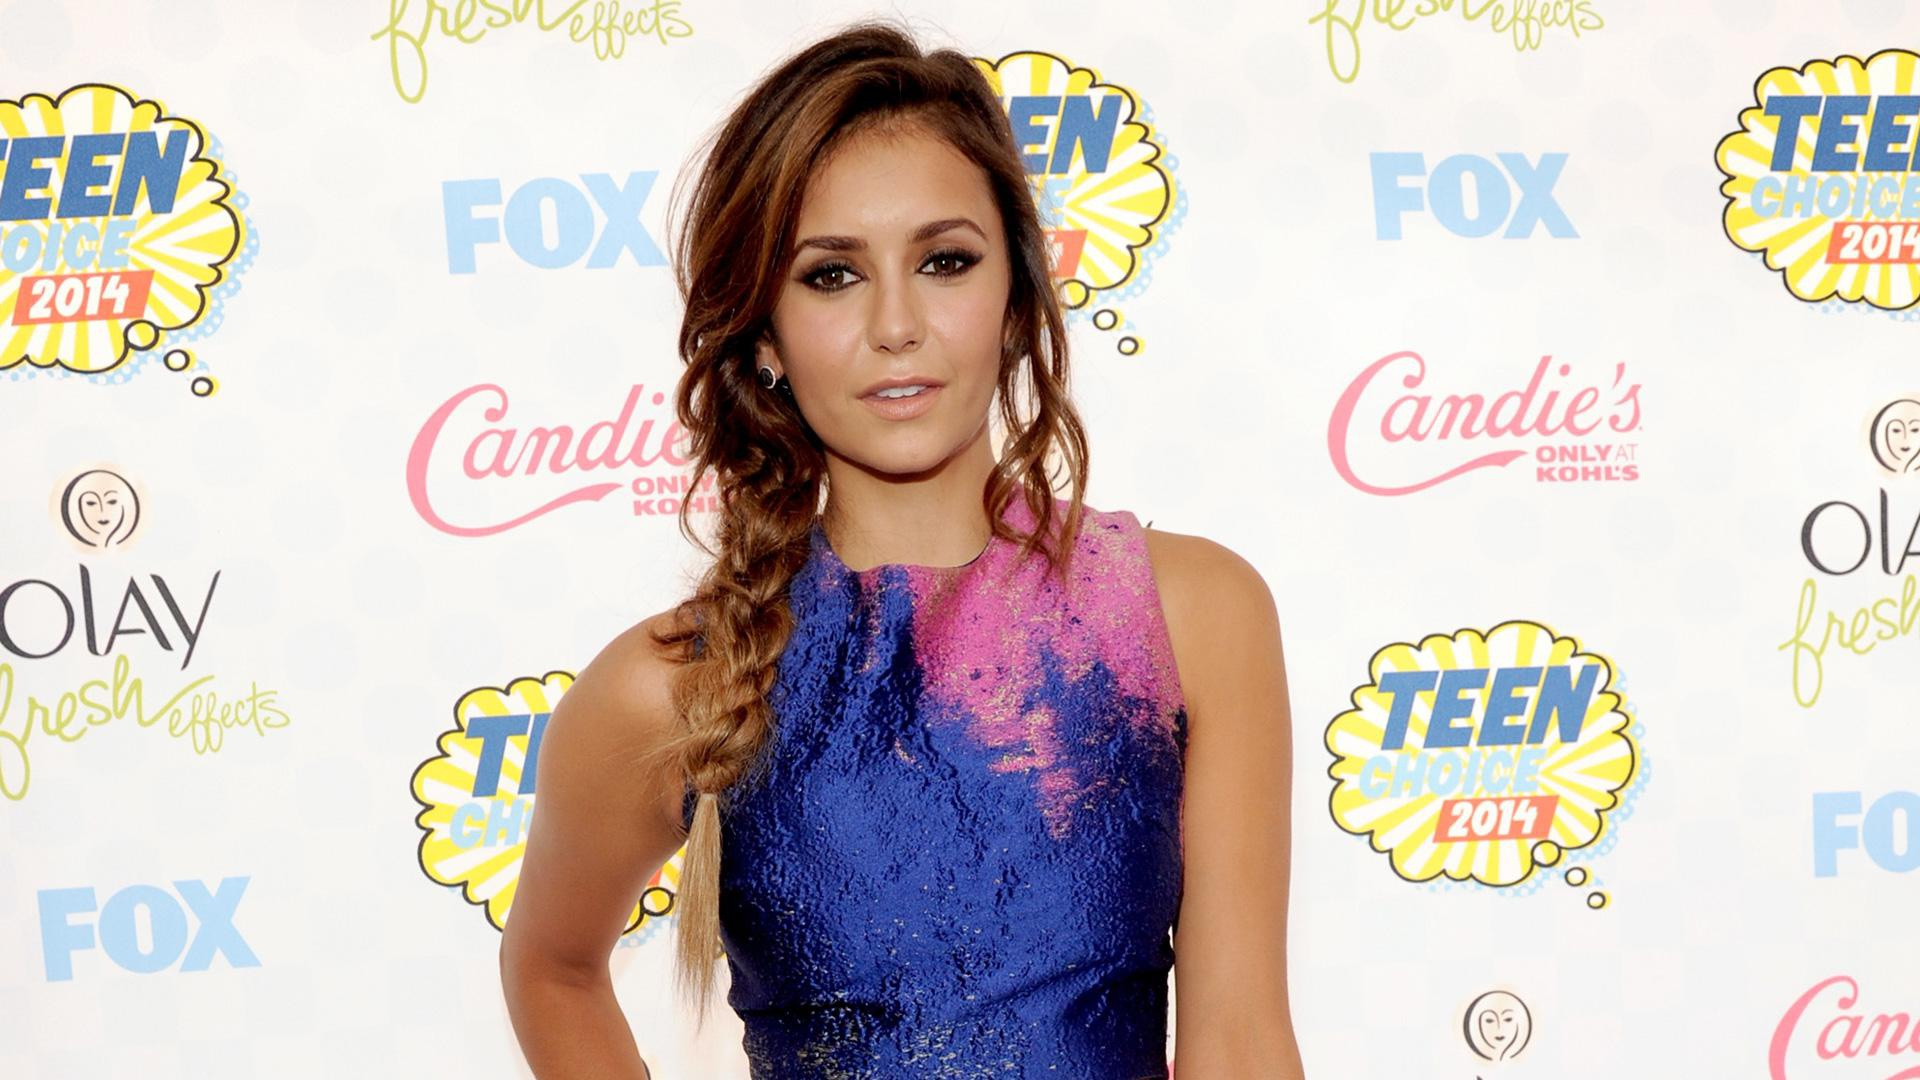 Nina Dobrev's Teen Choice Awards side plait is giving us serious braid envy